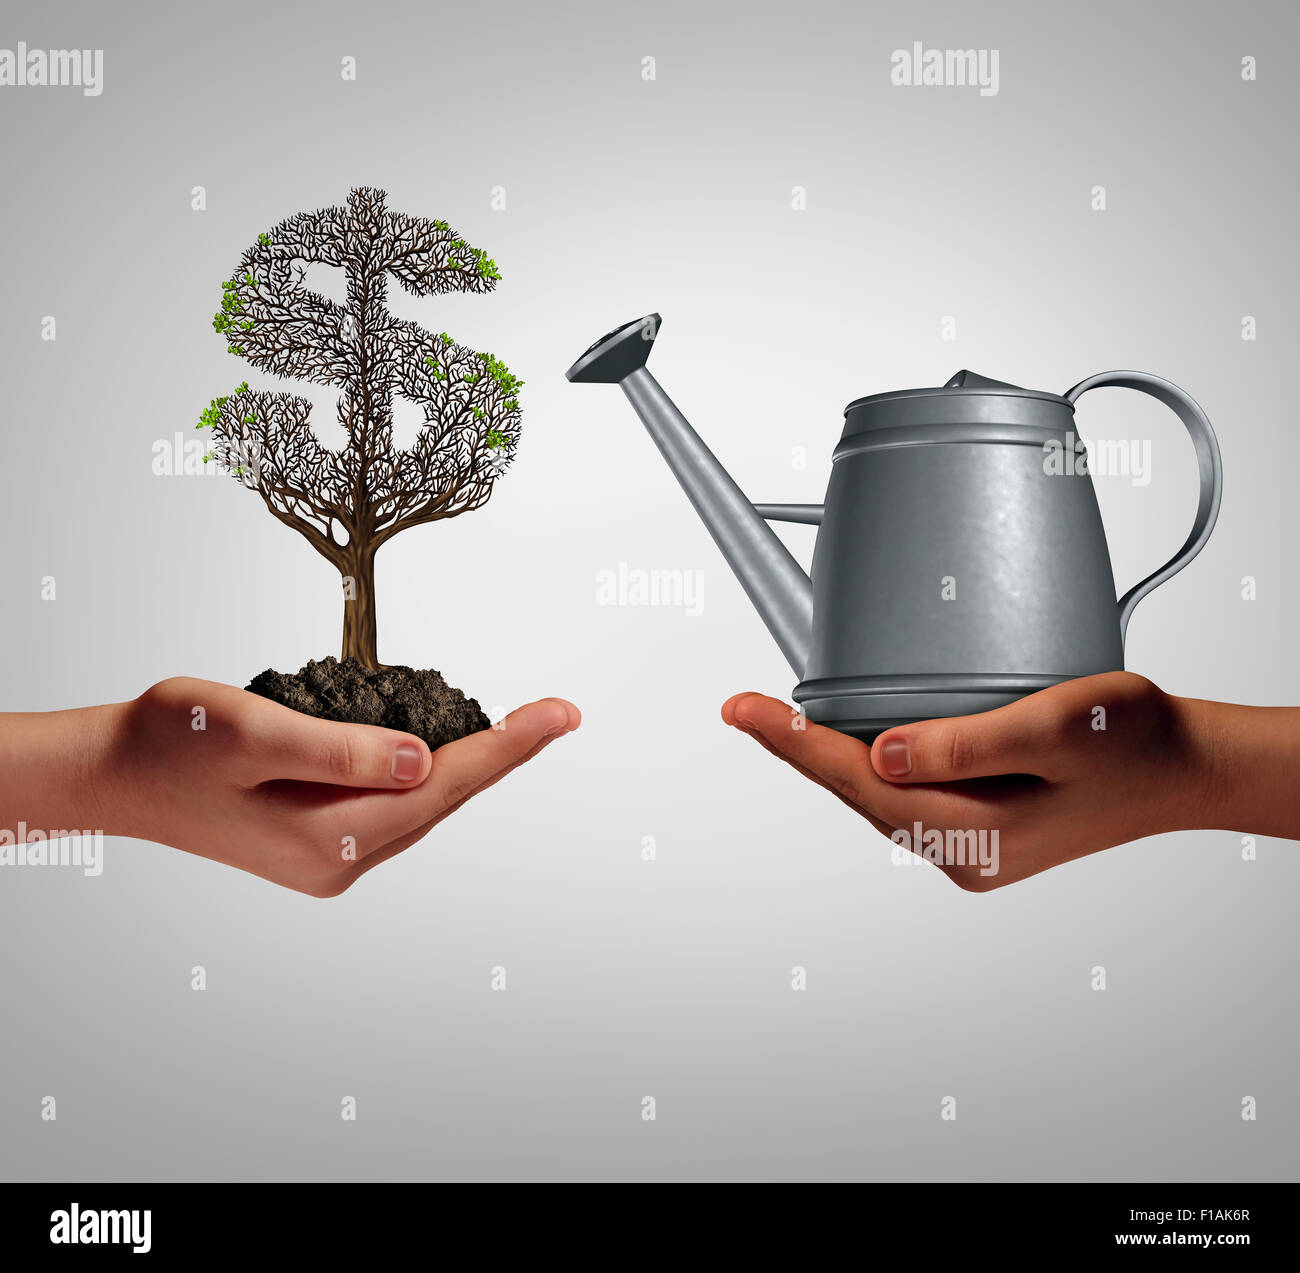 Financial assistance and business help concept as two hands holding a watering can and a struggling money tree as - Stock Image